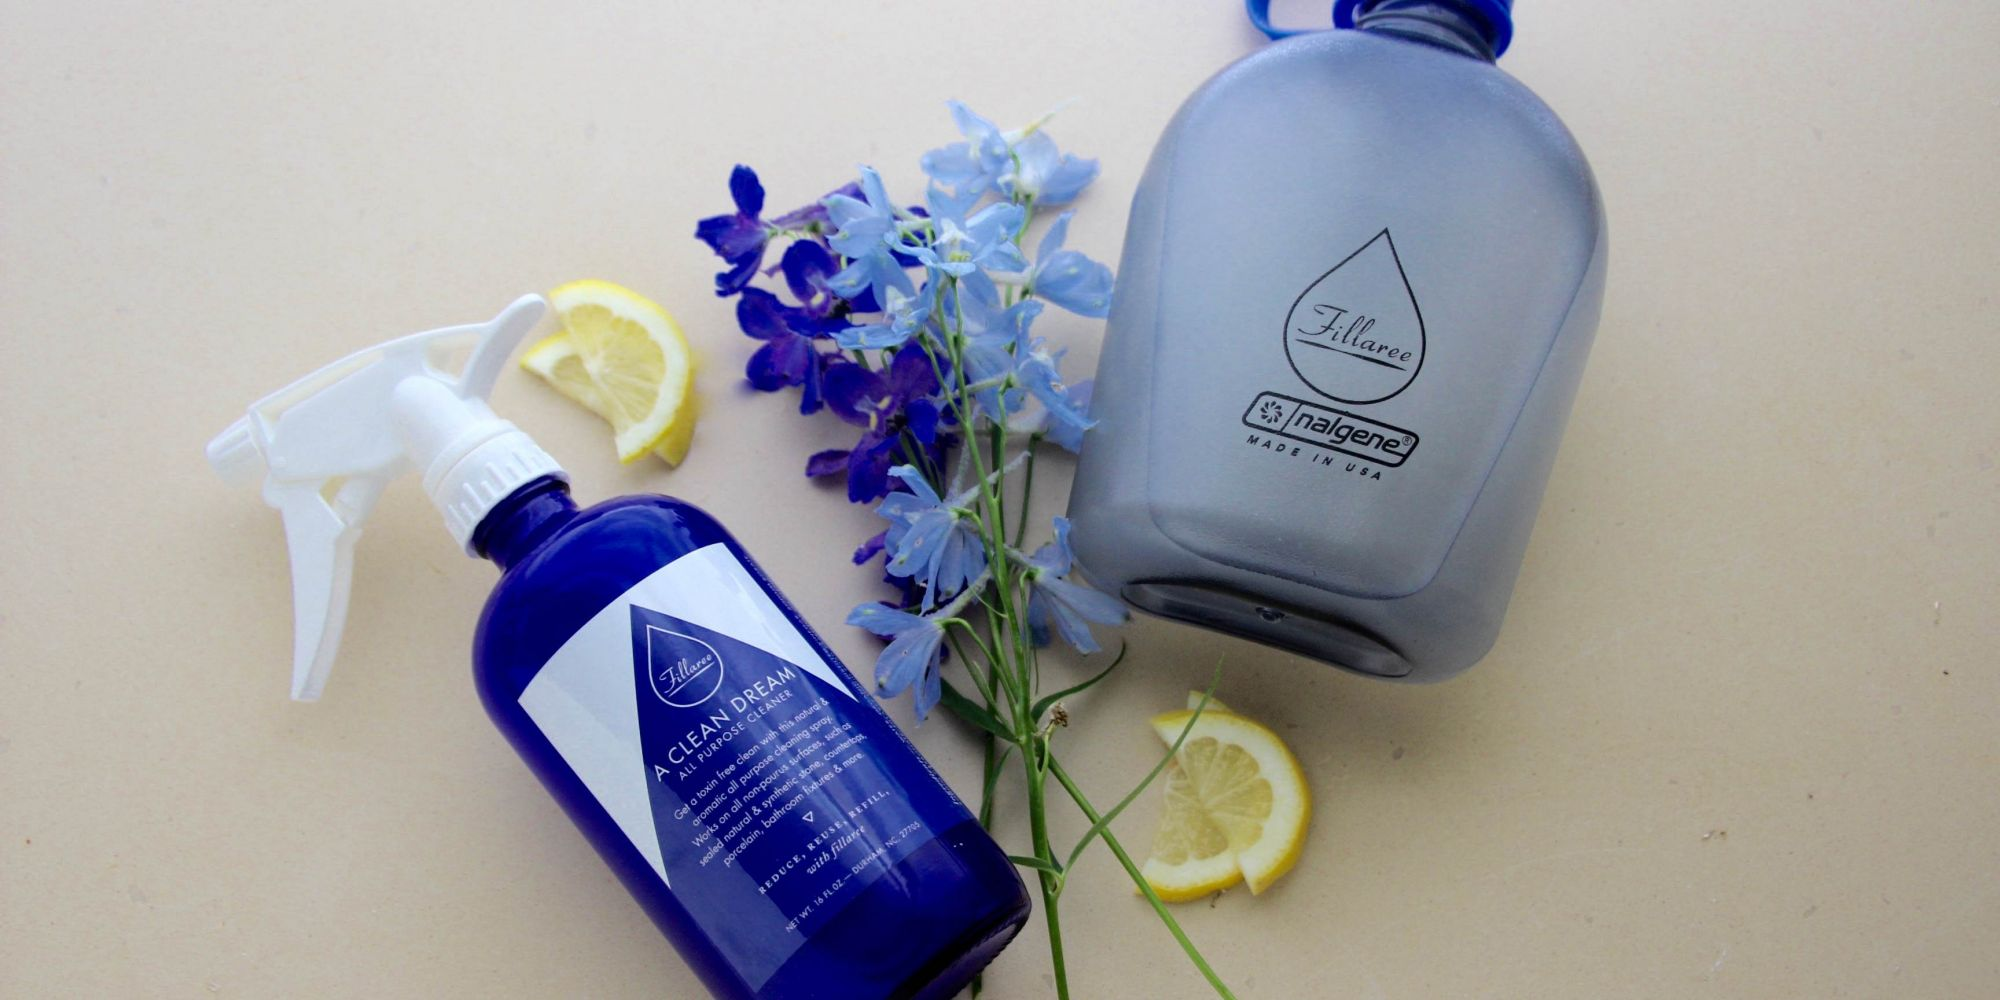 Fillaree Advocates For The Use And Reuse Of Beauty Packaging With Refillable Bottles